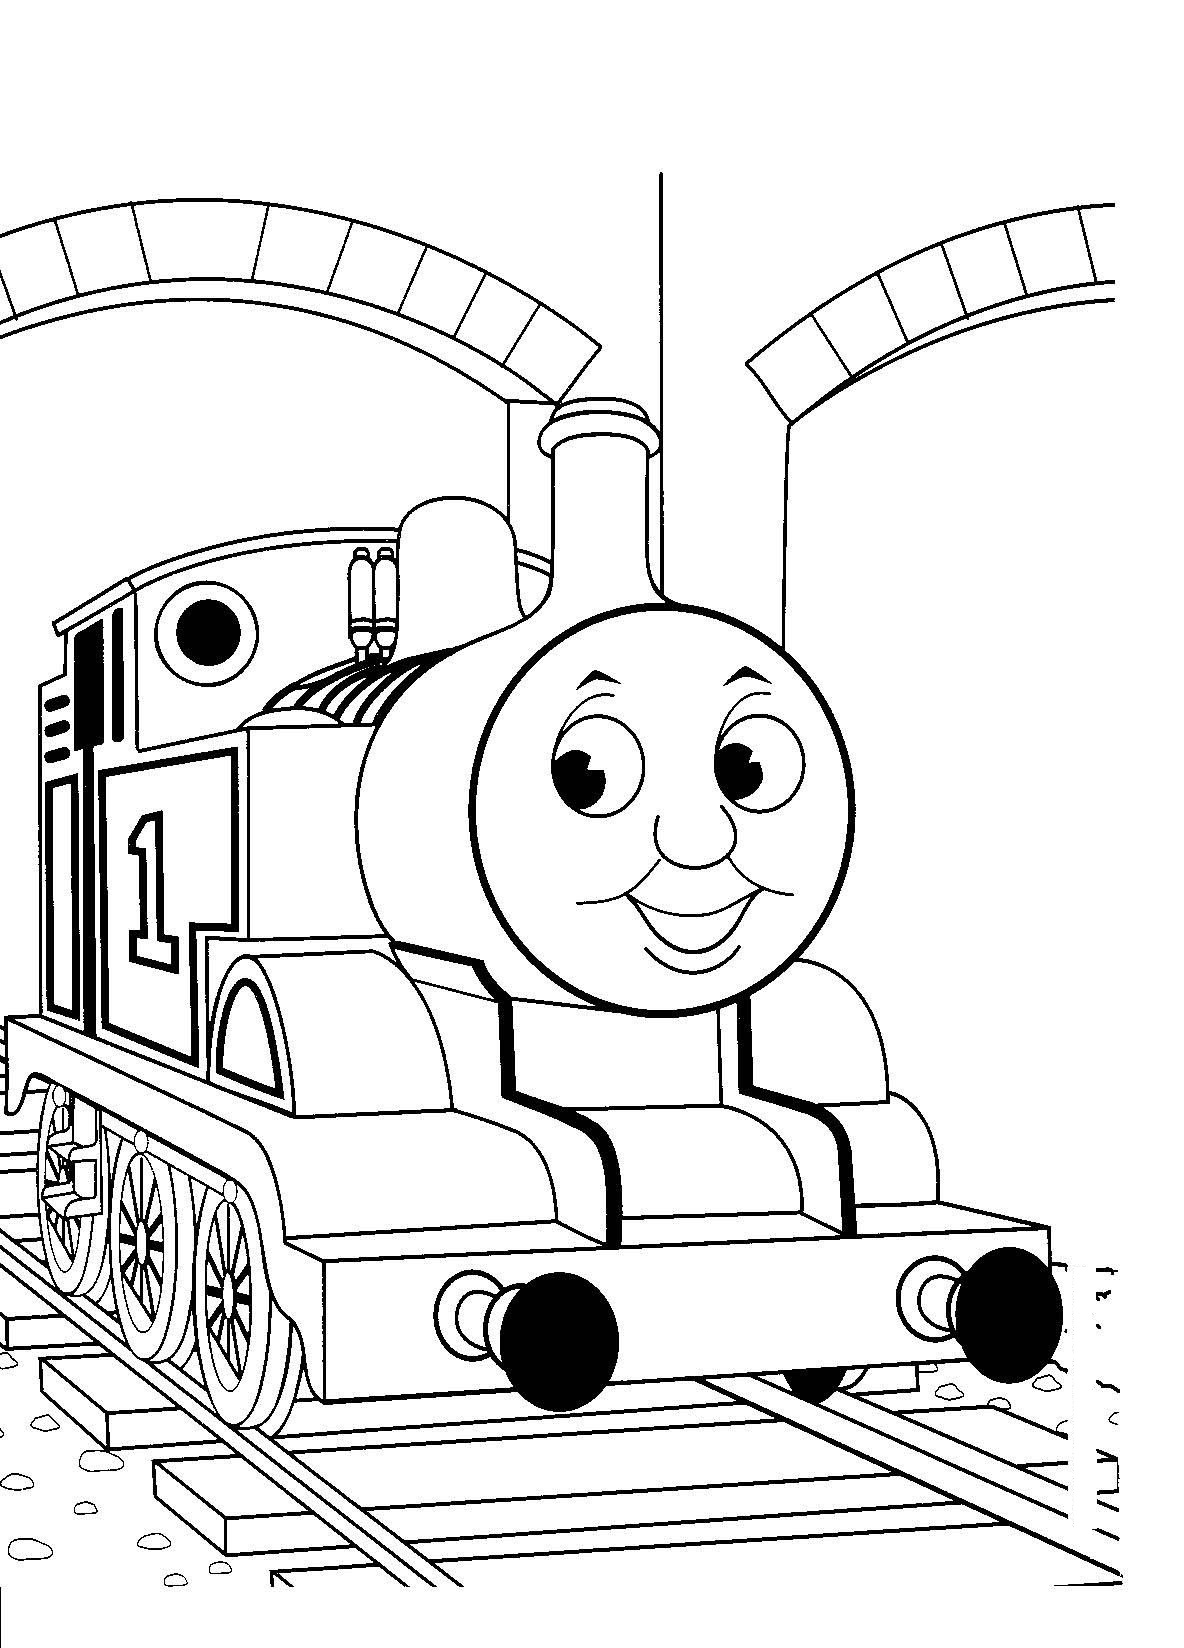 printable coloring pages of trains - photo#3